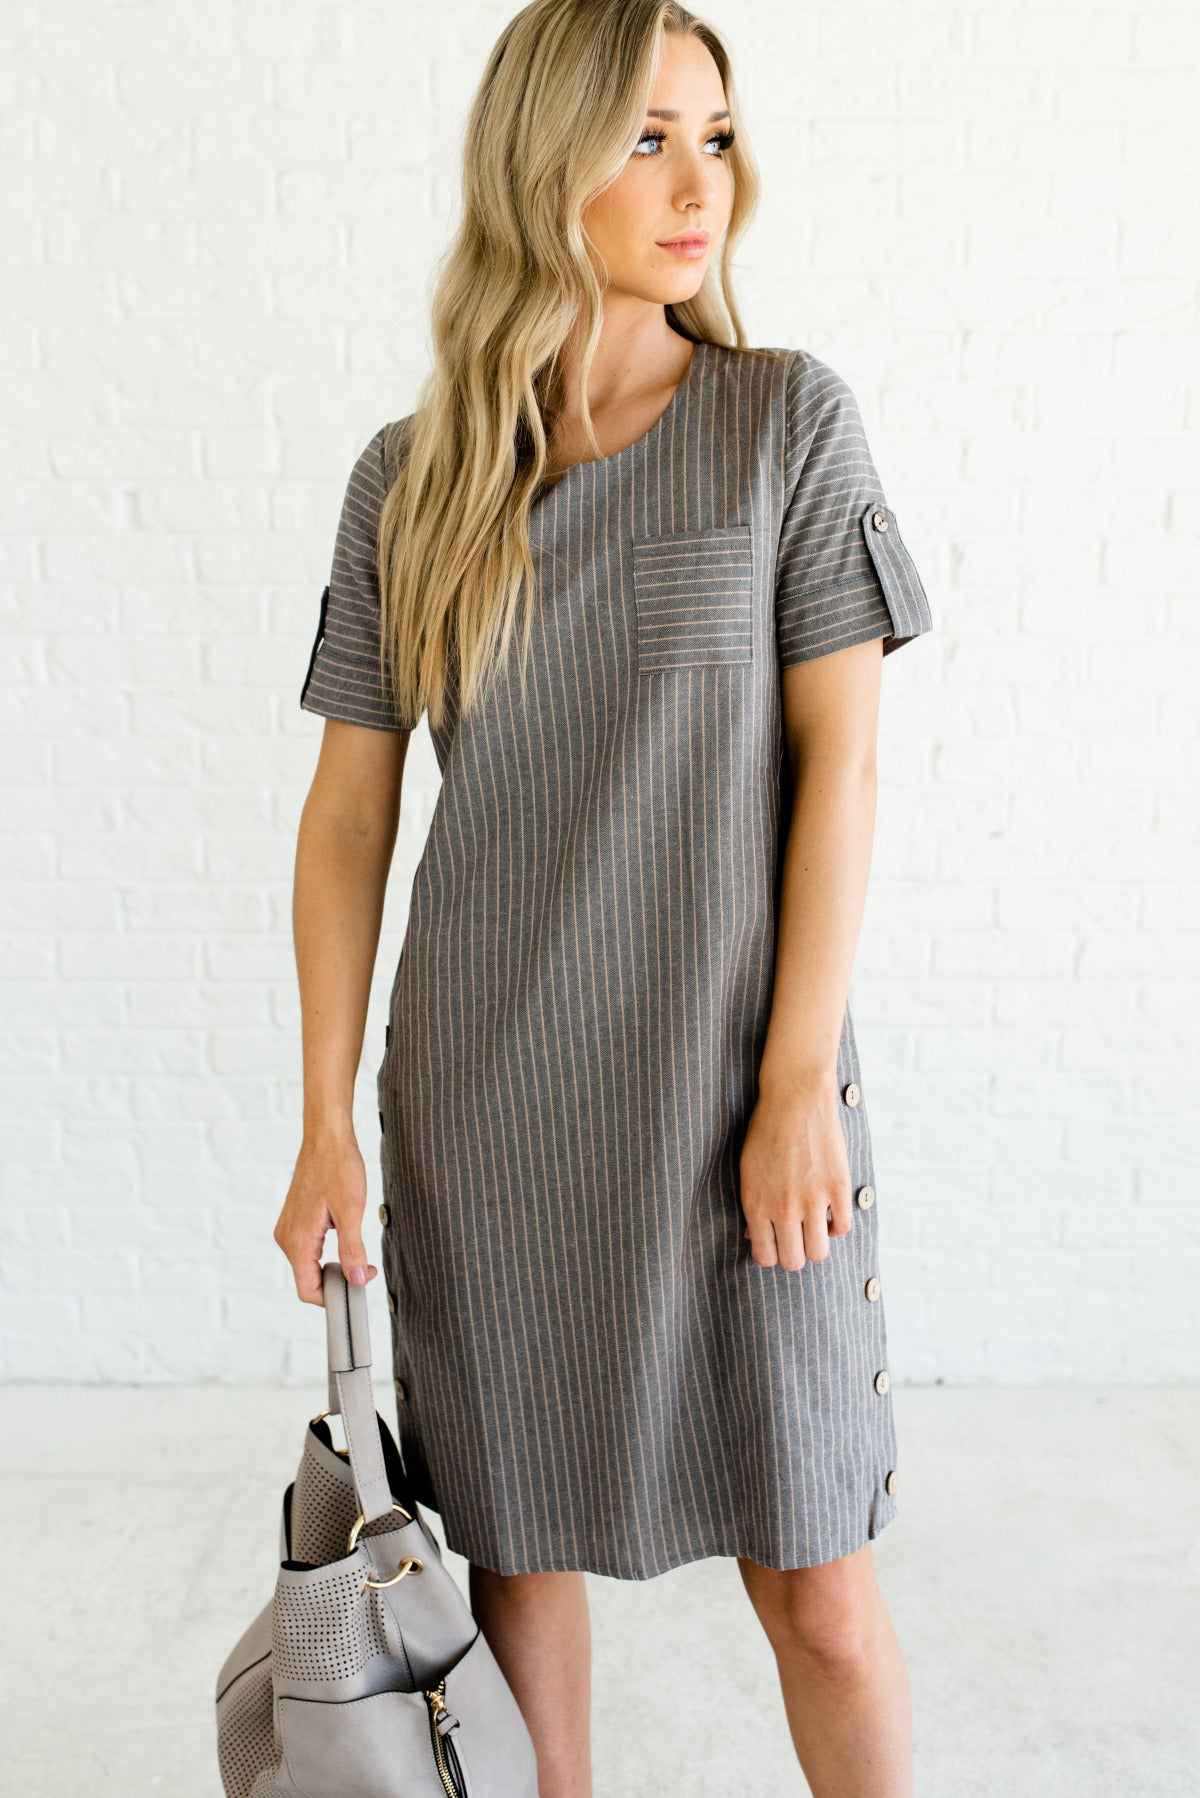 Gray and Taupe Striped Boutique Dresses for Women